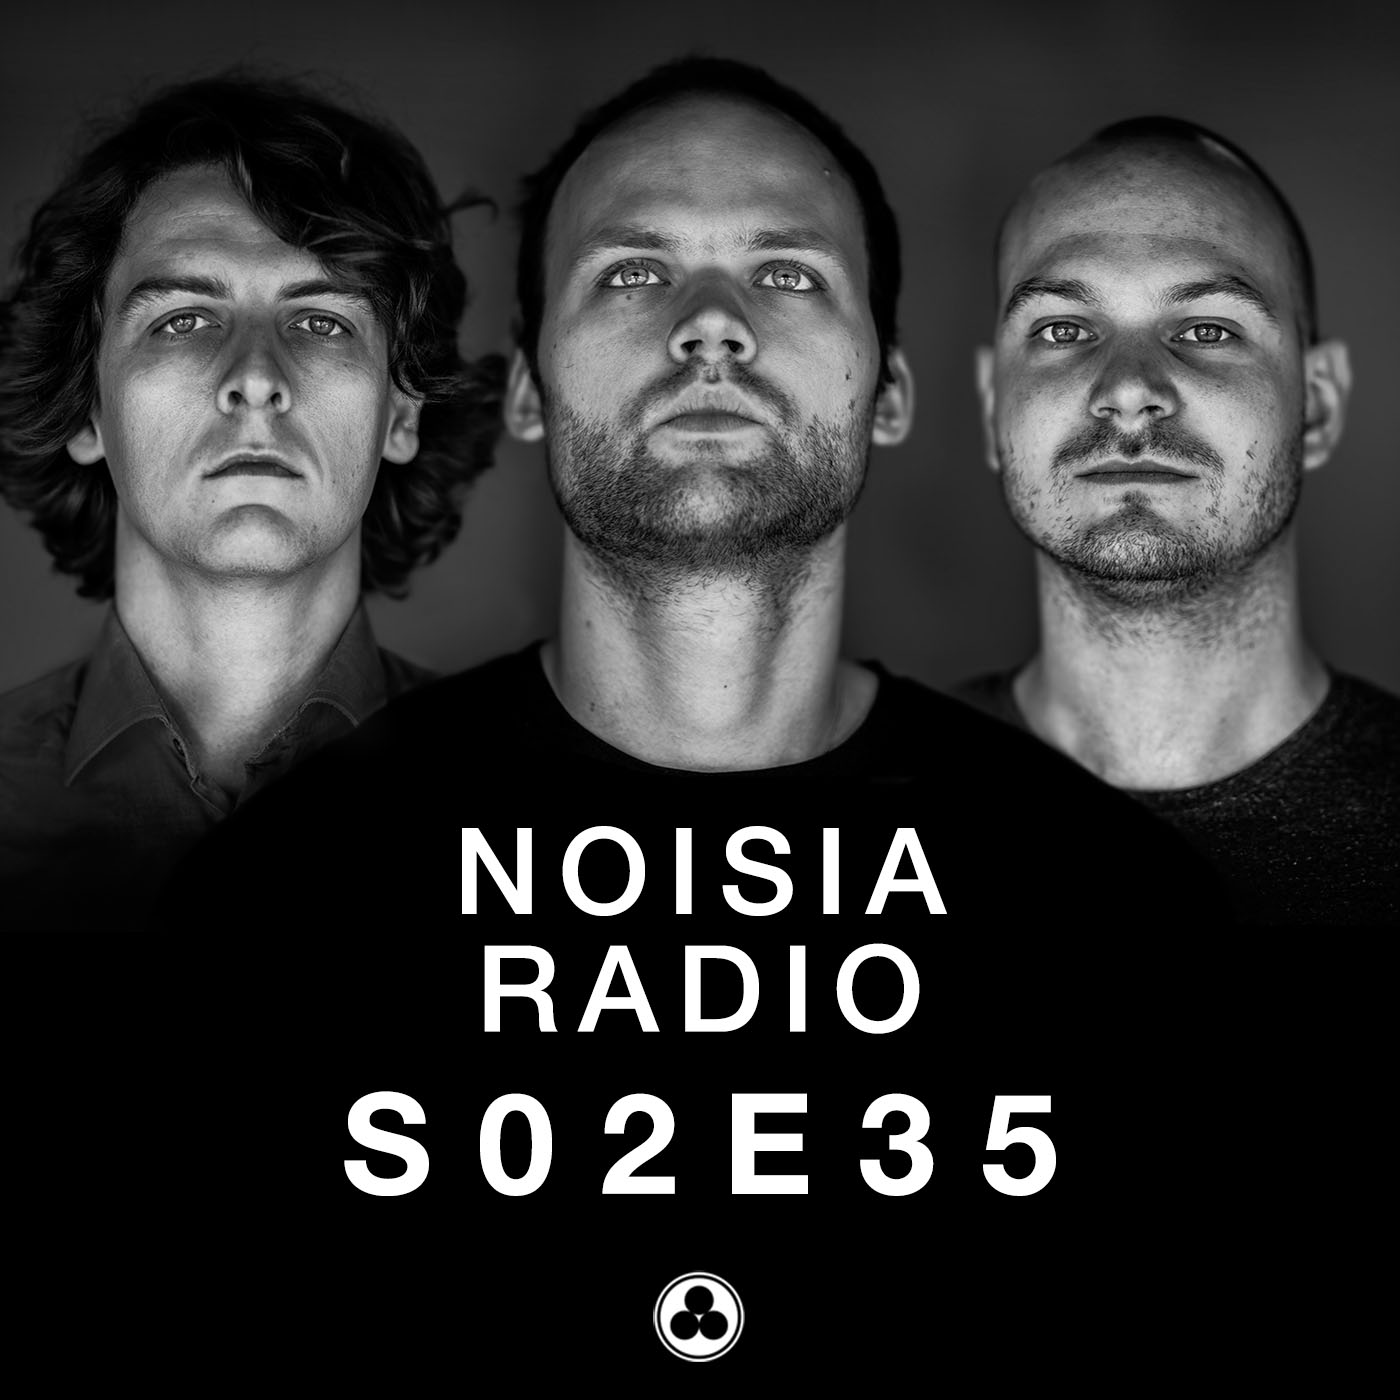 Noisia Radio S02E35